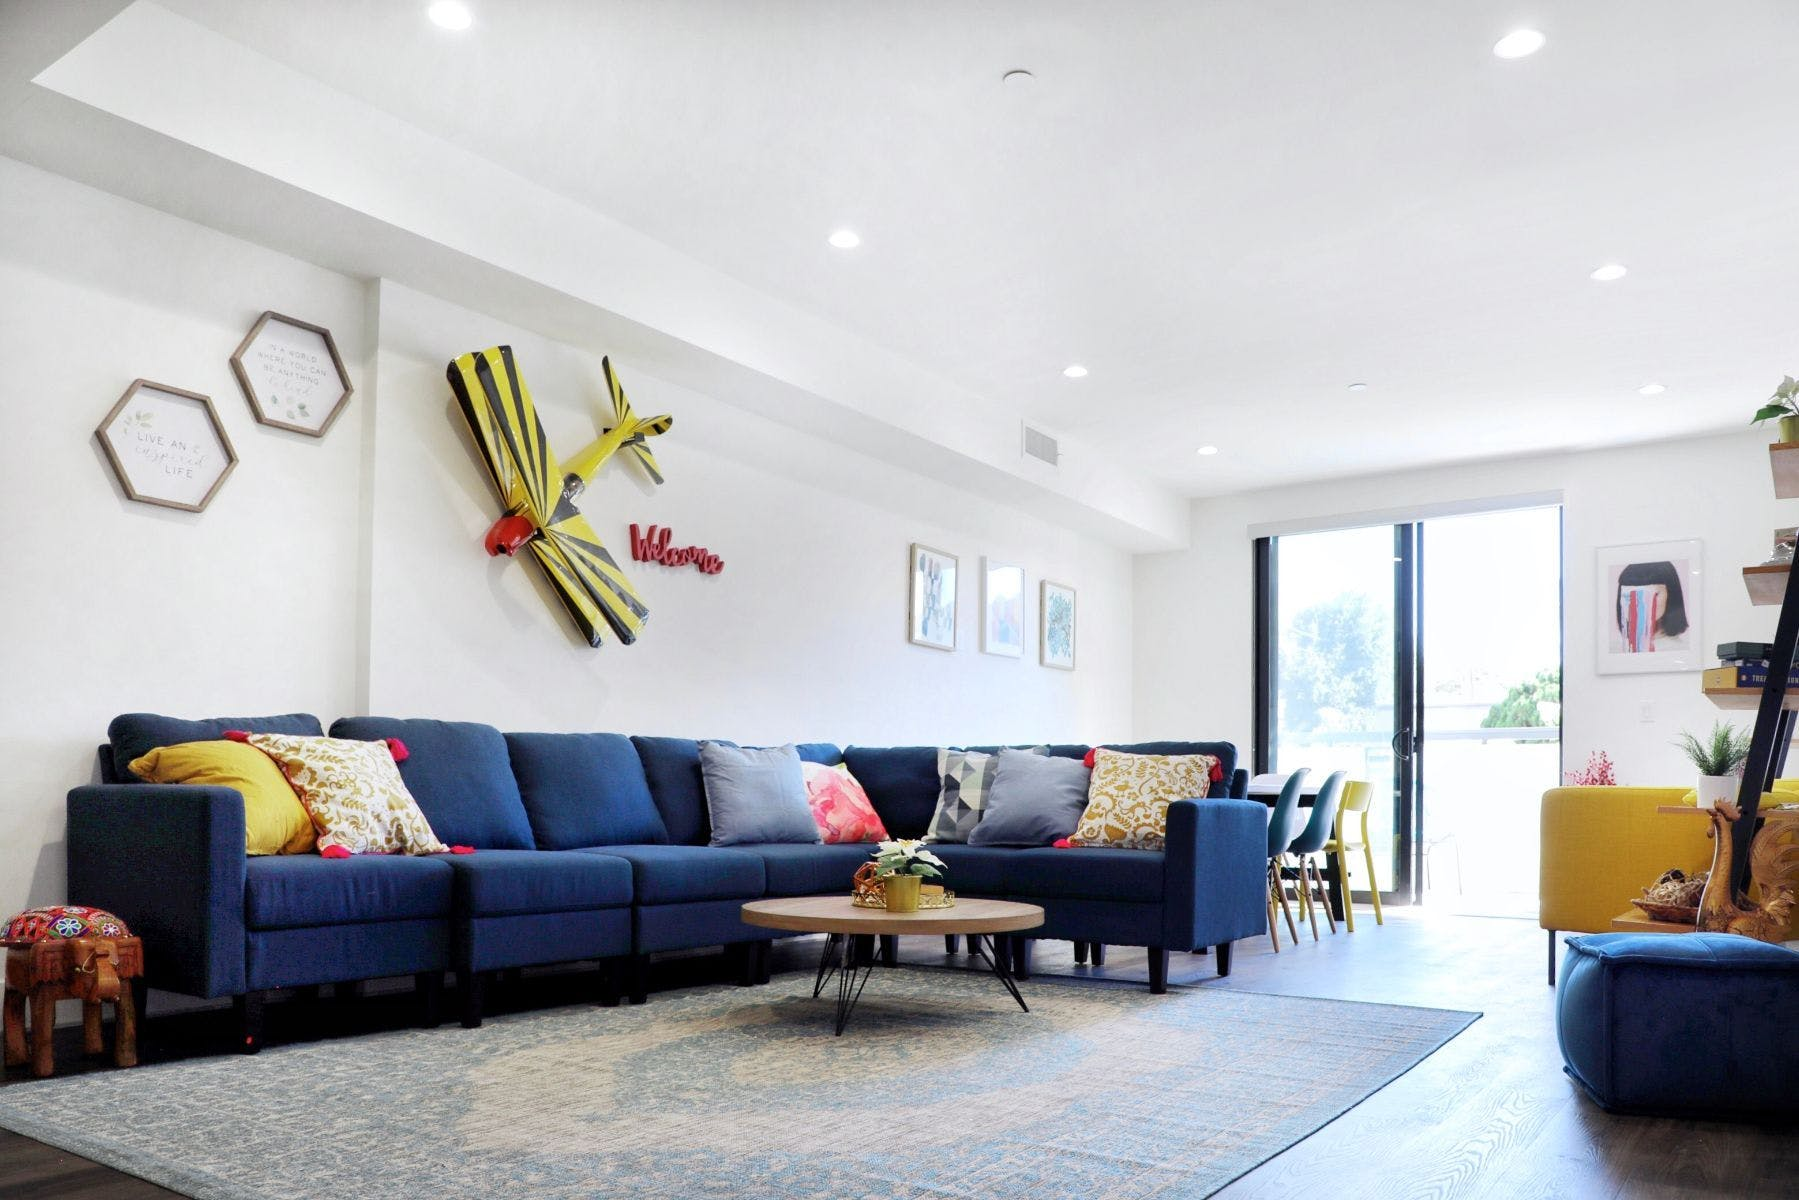 12 Residents | Richland Ave. -  Westwood - 15 mins from UCLA | Modern Urban Complex - Incl. Coworking + Terrace